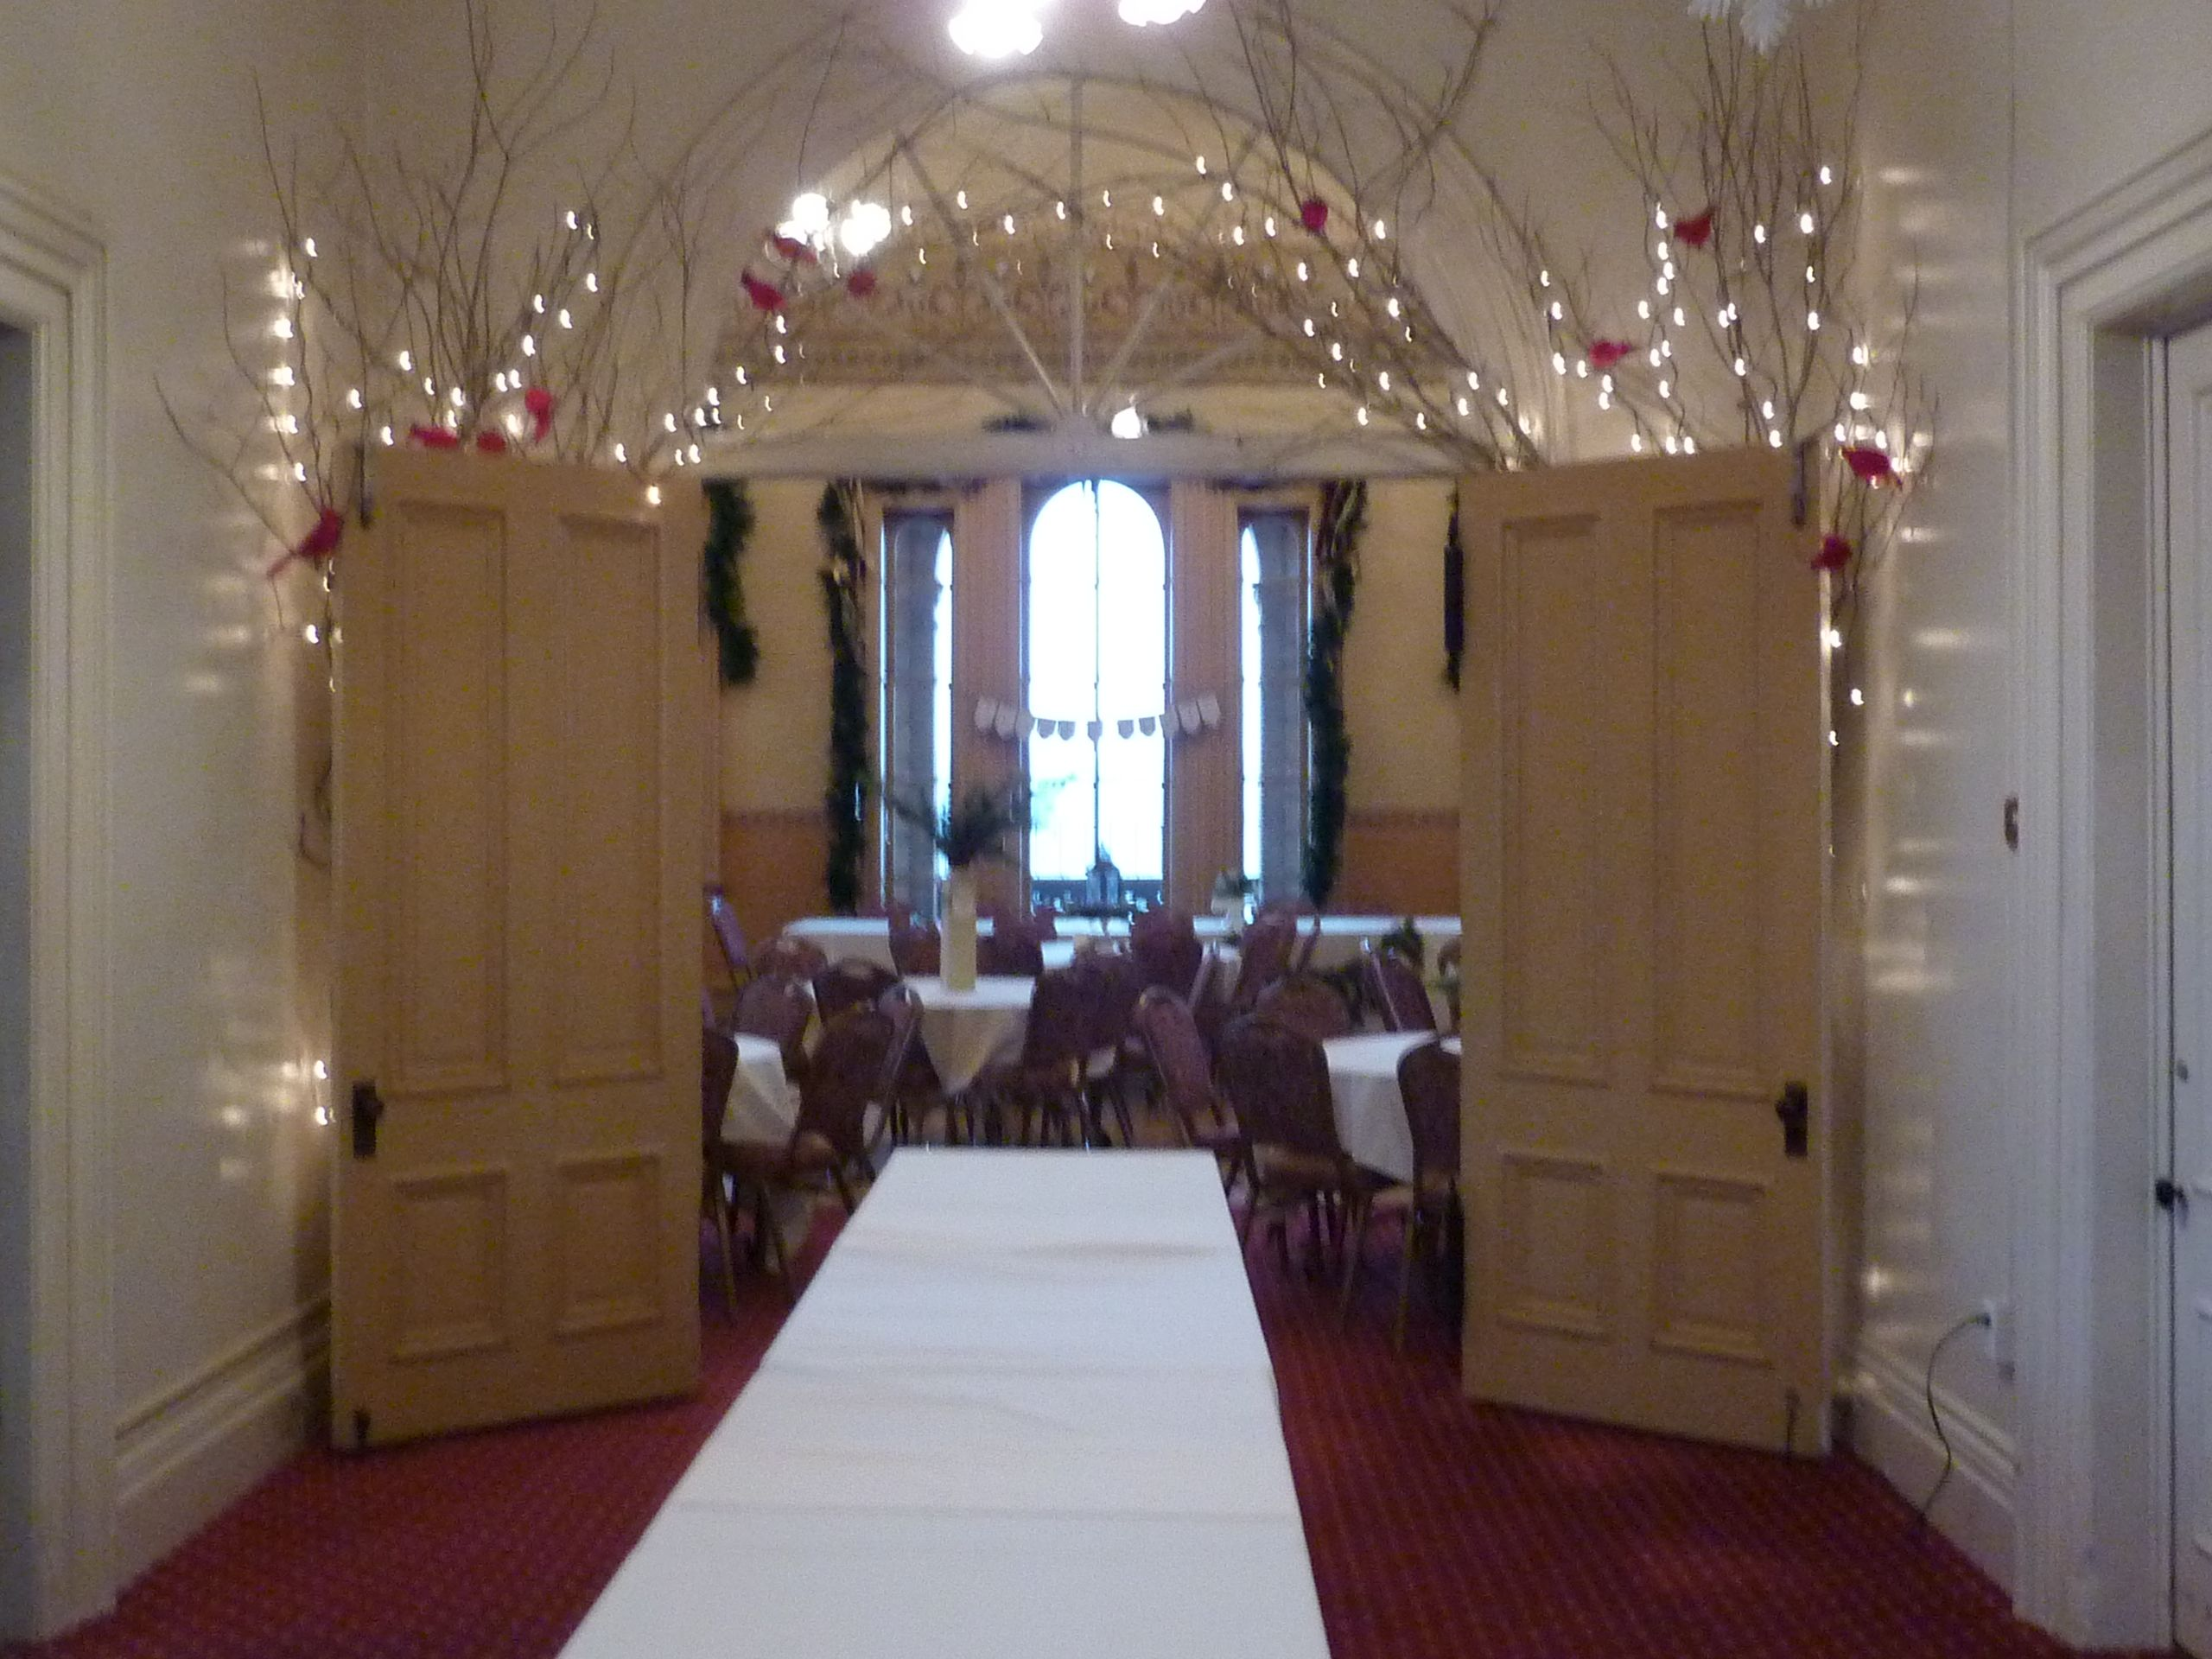 Winter decorations for a Christmas wedding at the Washington County ...